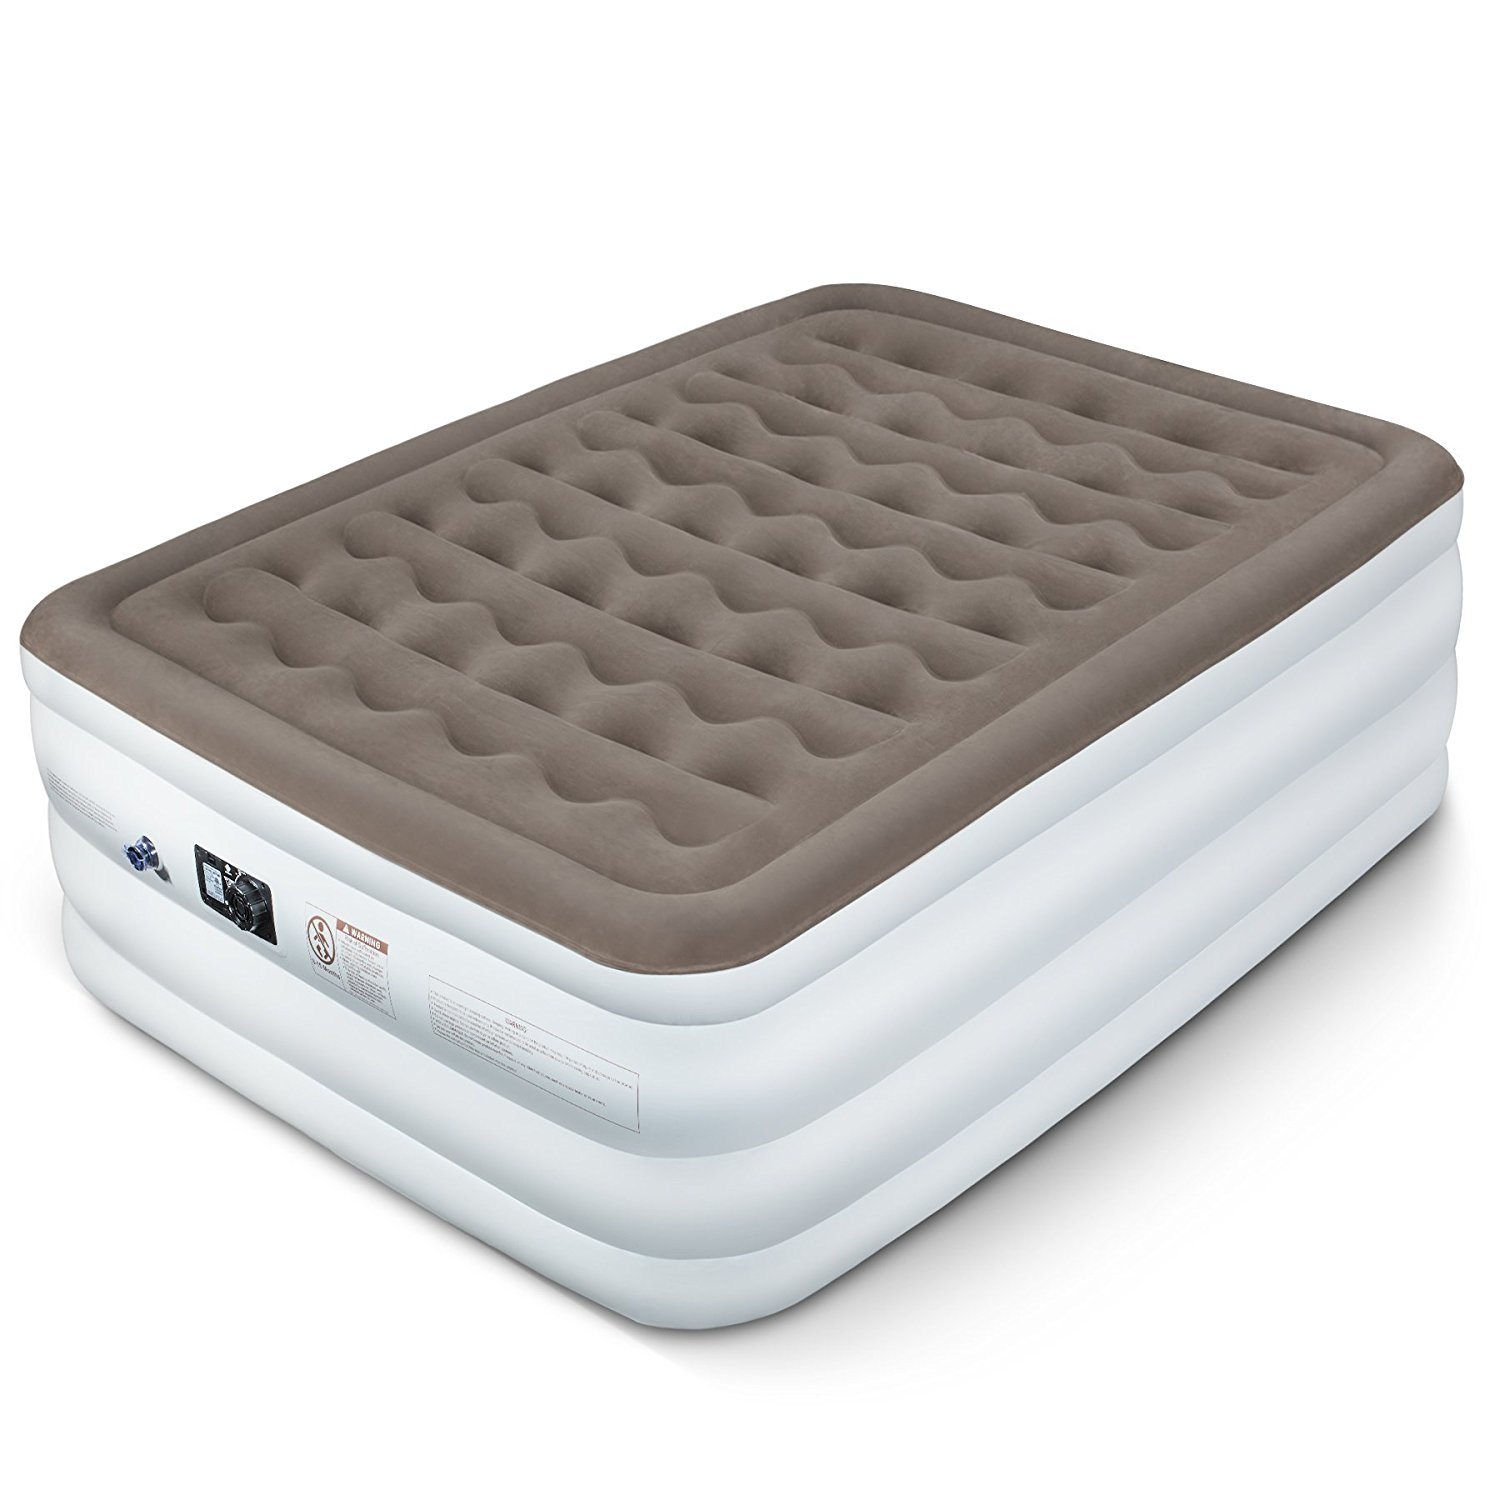 Best Air Beds Inflatable Mattresses Sold Online